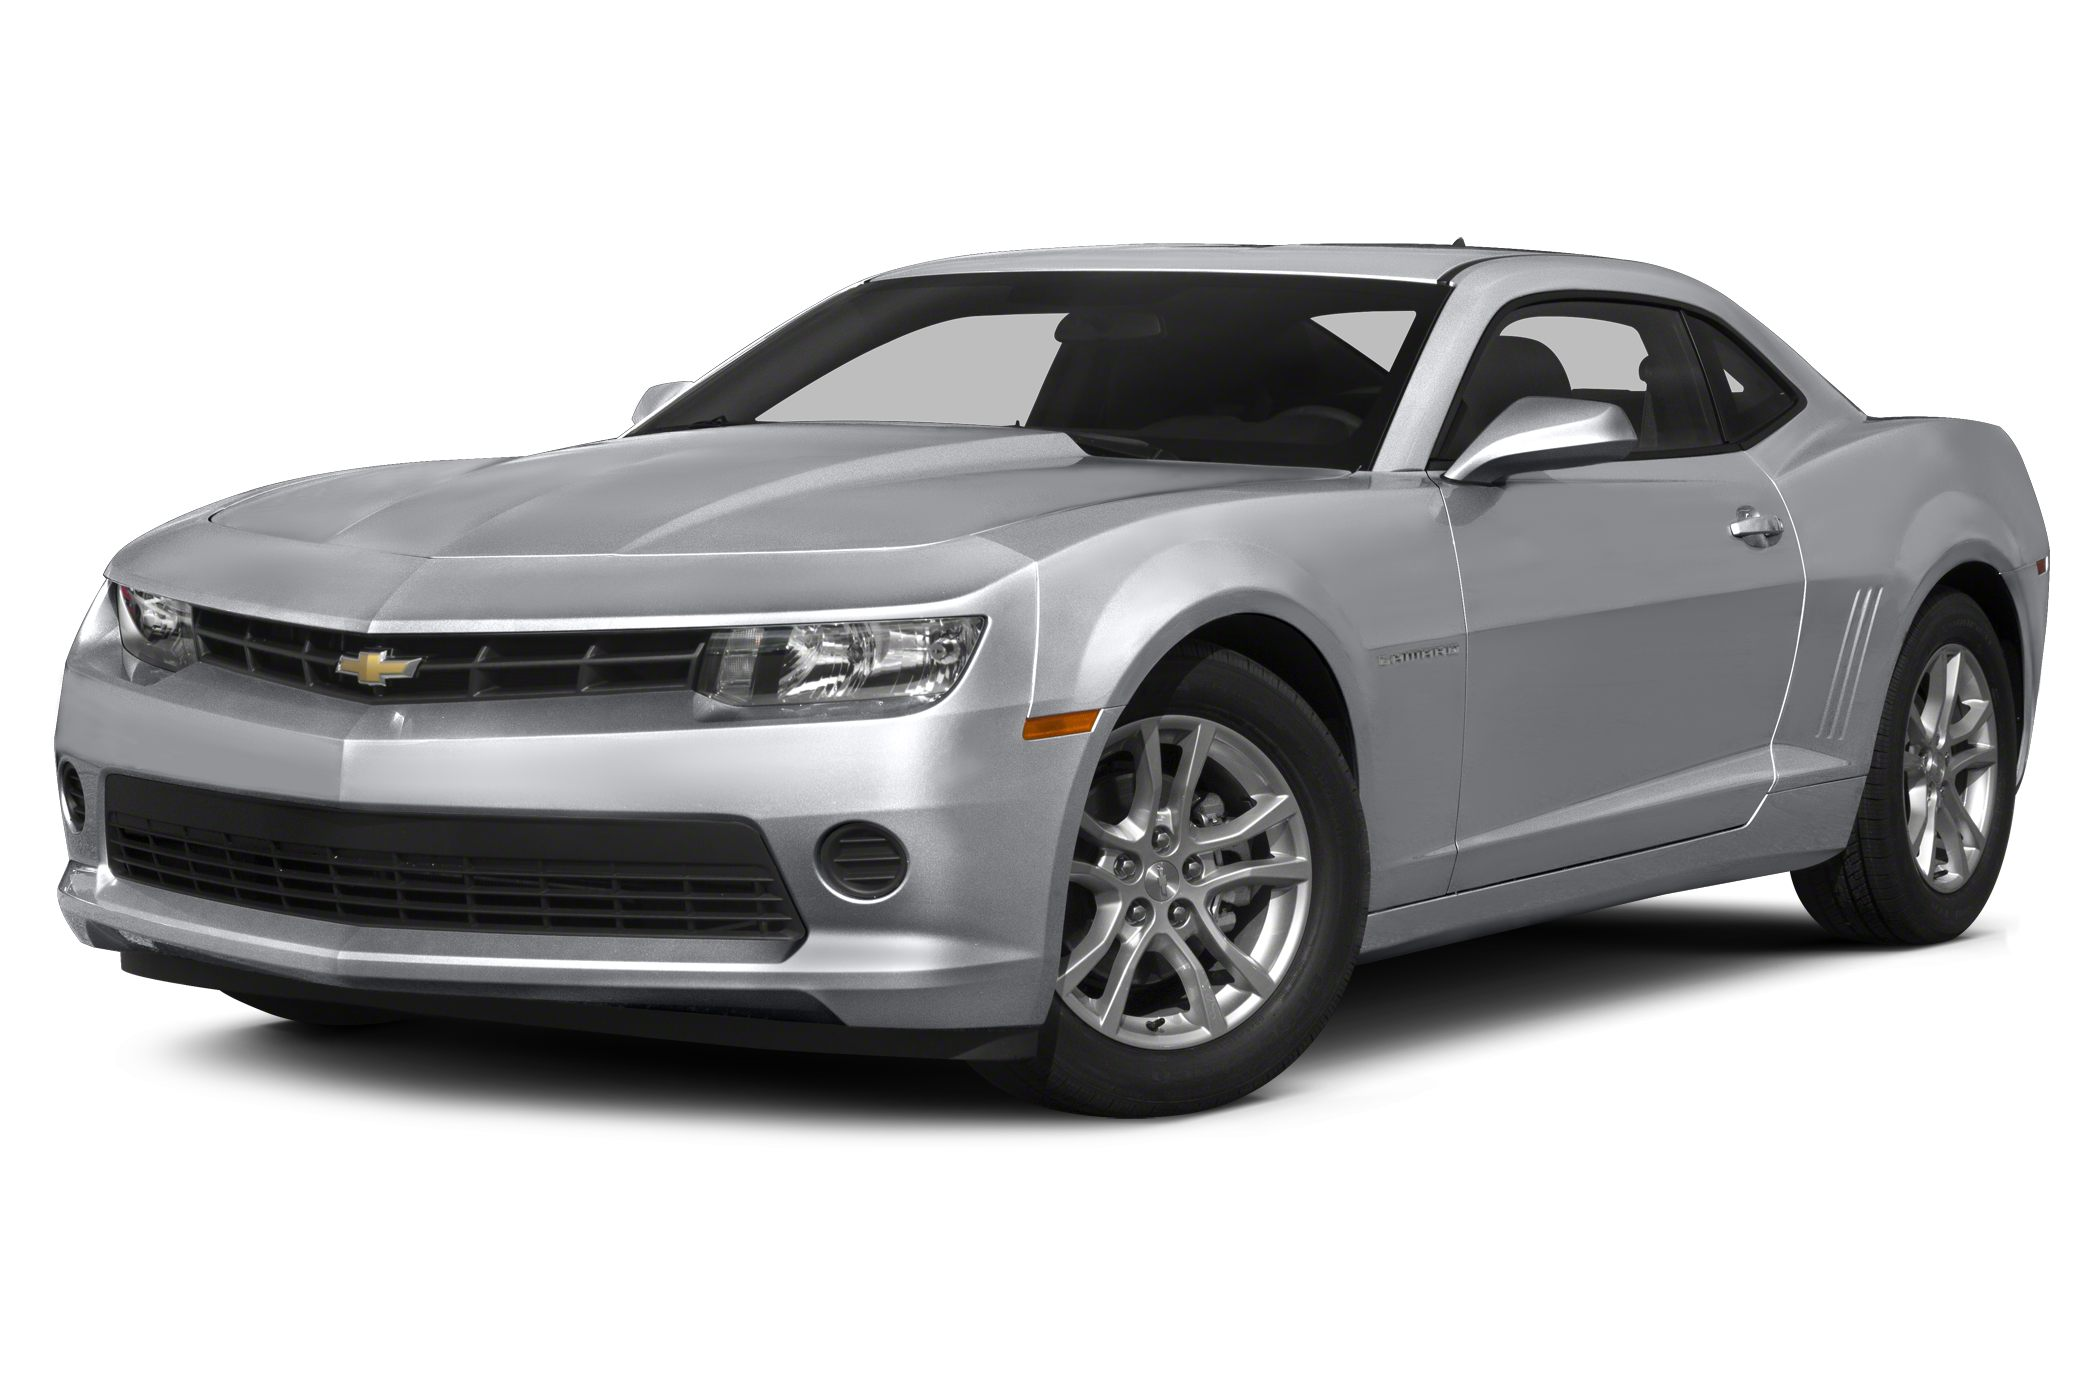 2015 Chevrolet Camaro 2LT Coupe for sale in Merced for $34,115 with 0 miles.